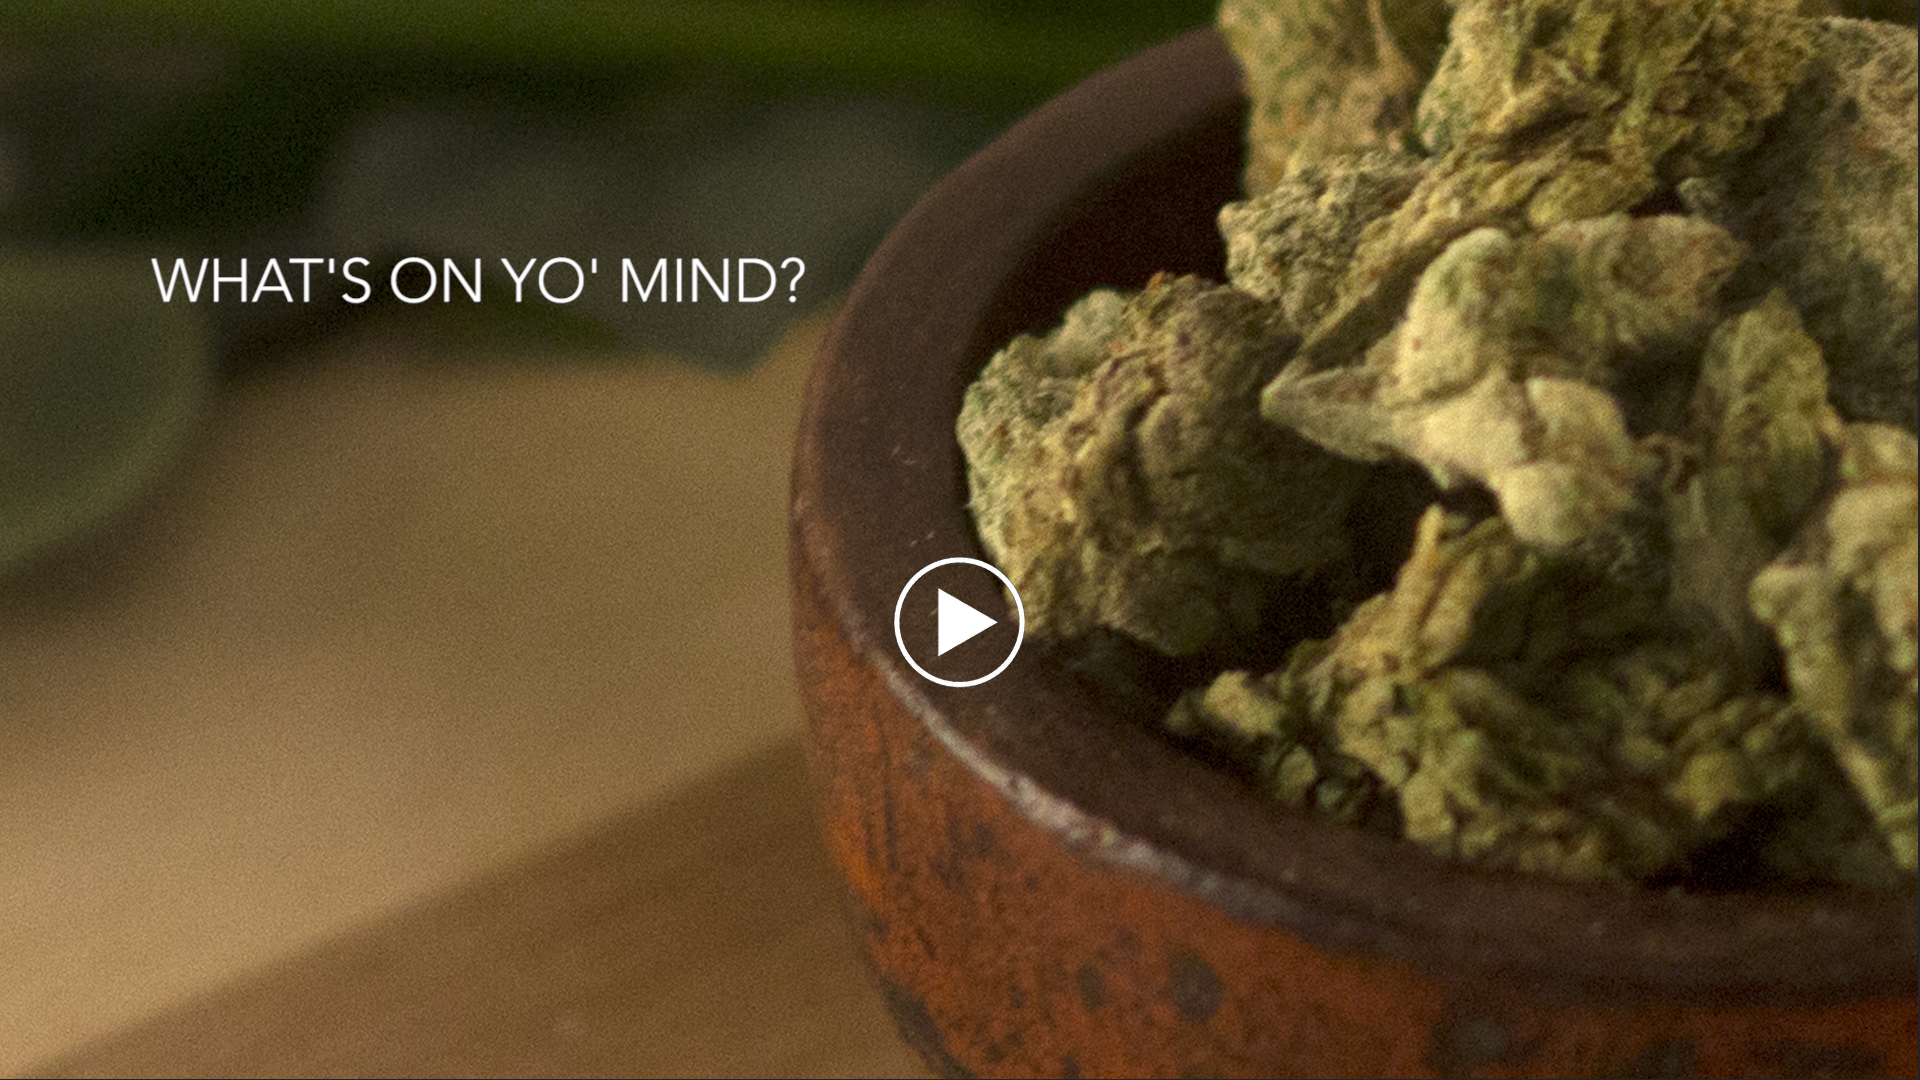 Infused.tv - What On Yo' Mind? (Episode 1 - Course 4)